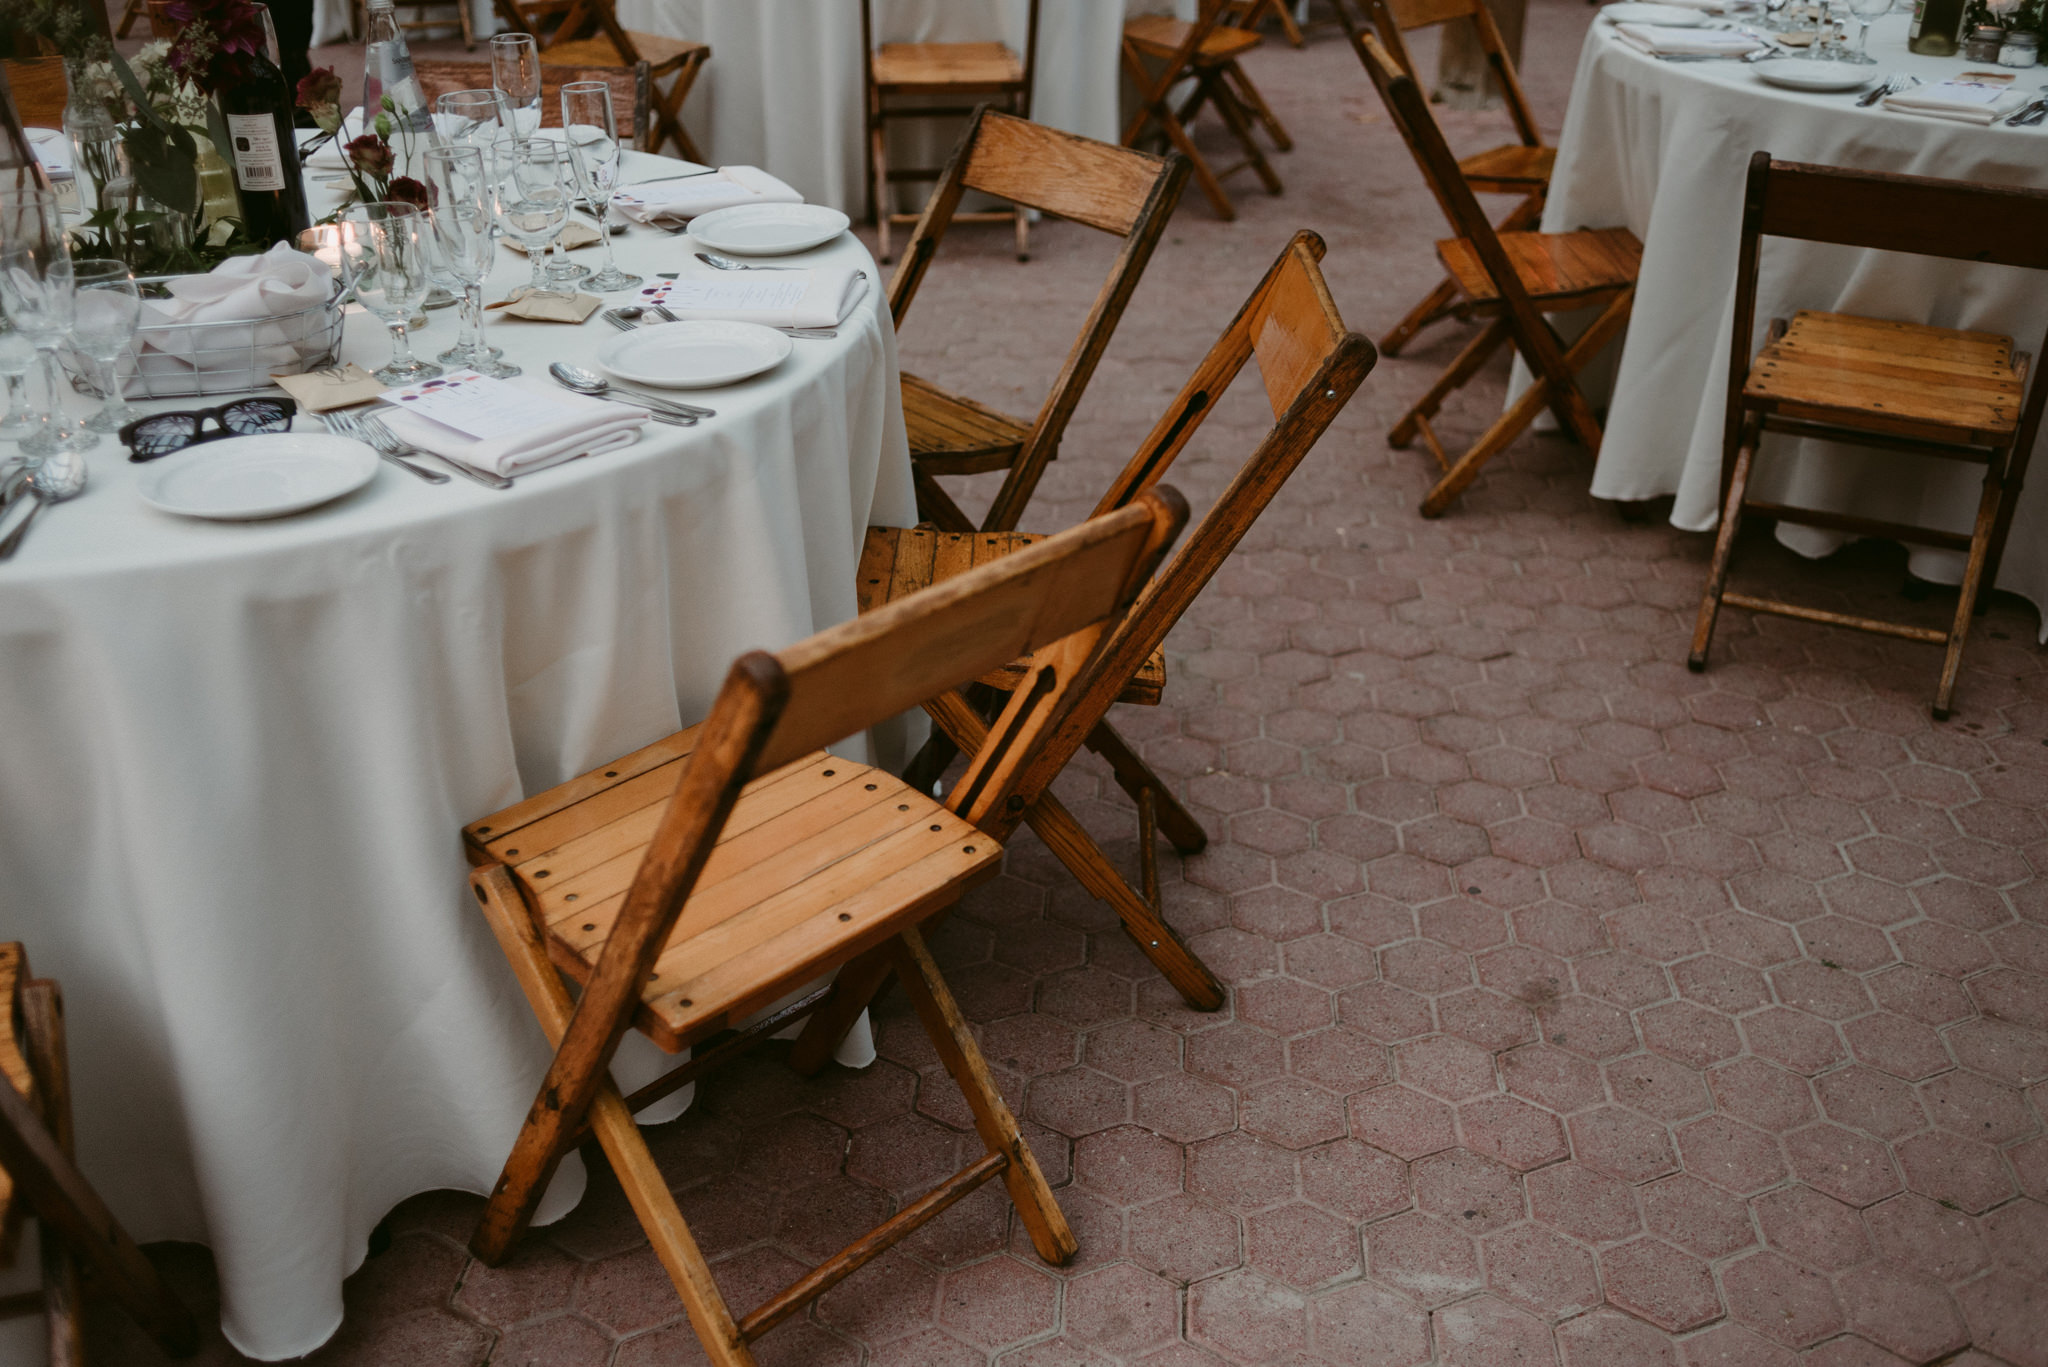 Round tables with white table clothes and wooden chairs